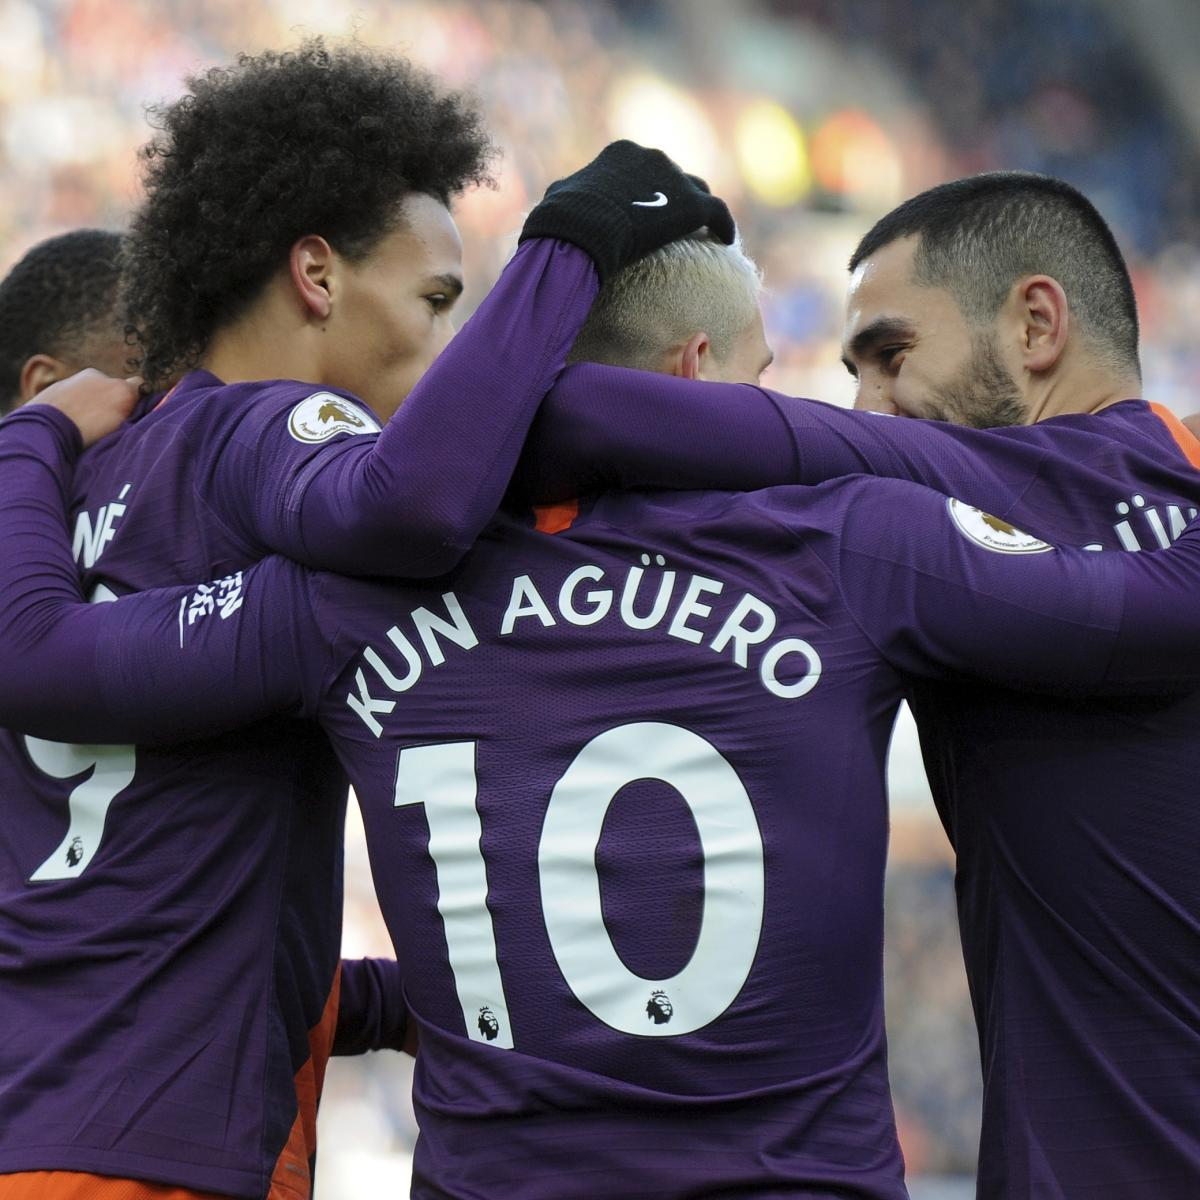 Champions League 2019 Round Of 16 Leg 2 Live Stream Tv: Schalke Vs. Manchester City: How To Watch, Schedule, Odds